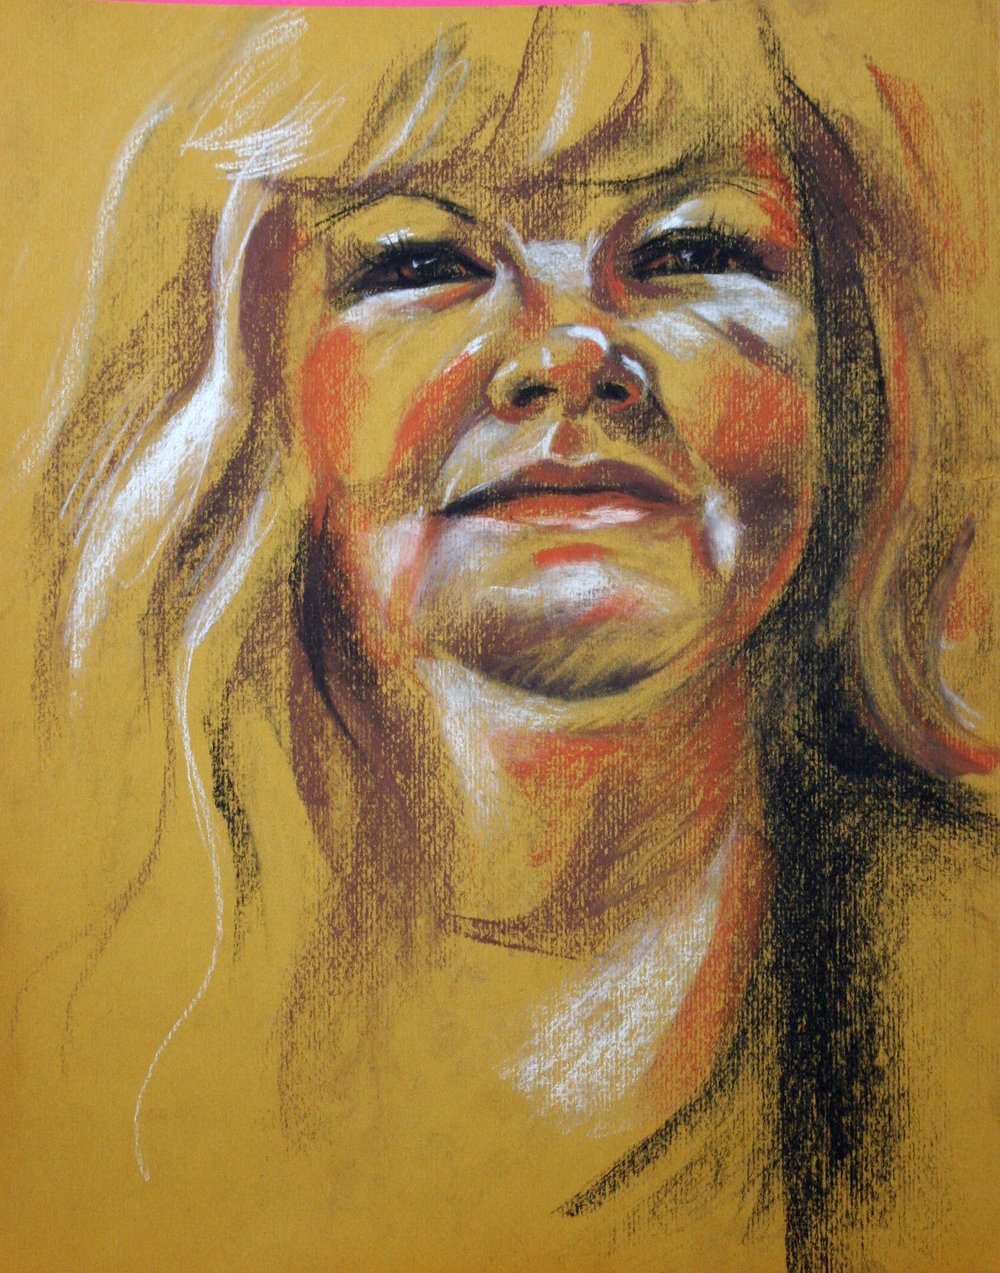 Sarah Curry did this drawing.